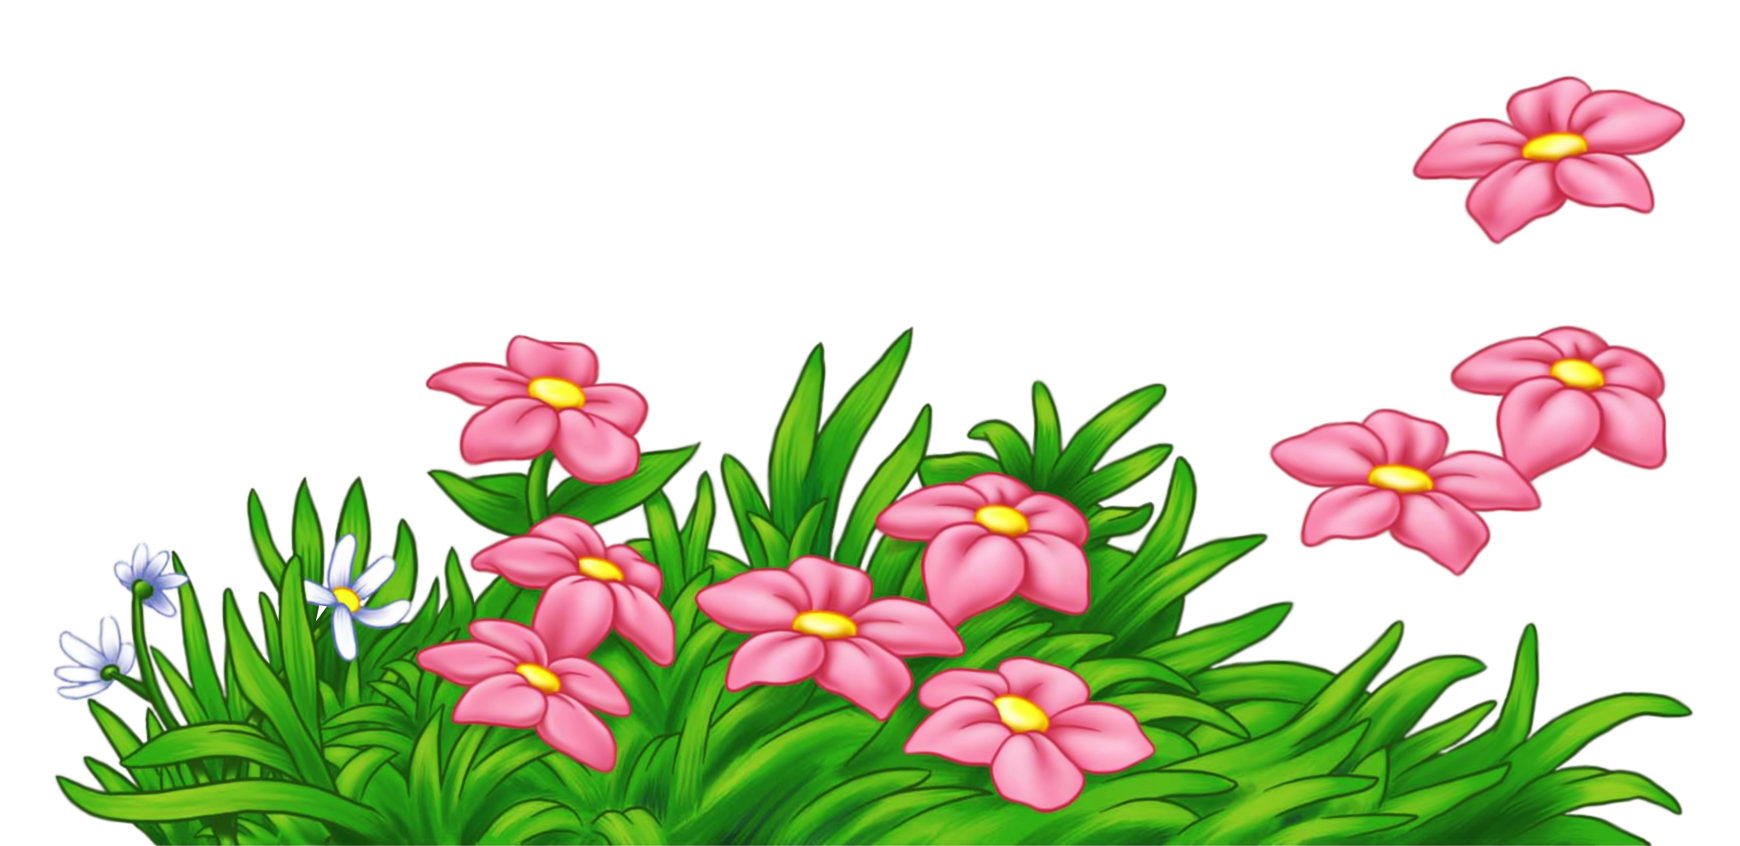 1740x846 Grass With Pink Flowers Png Clipart Grasses